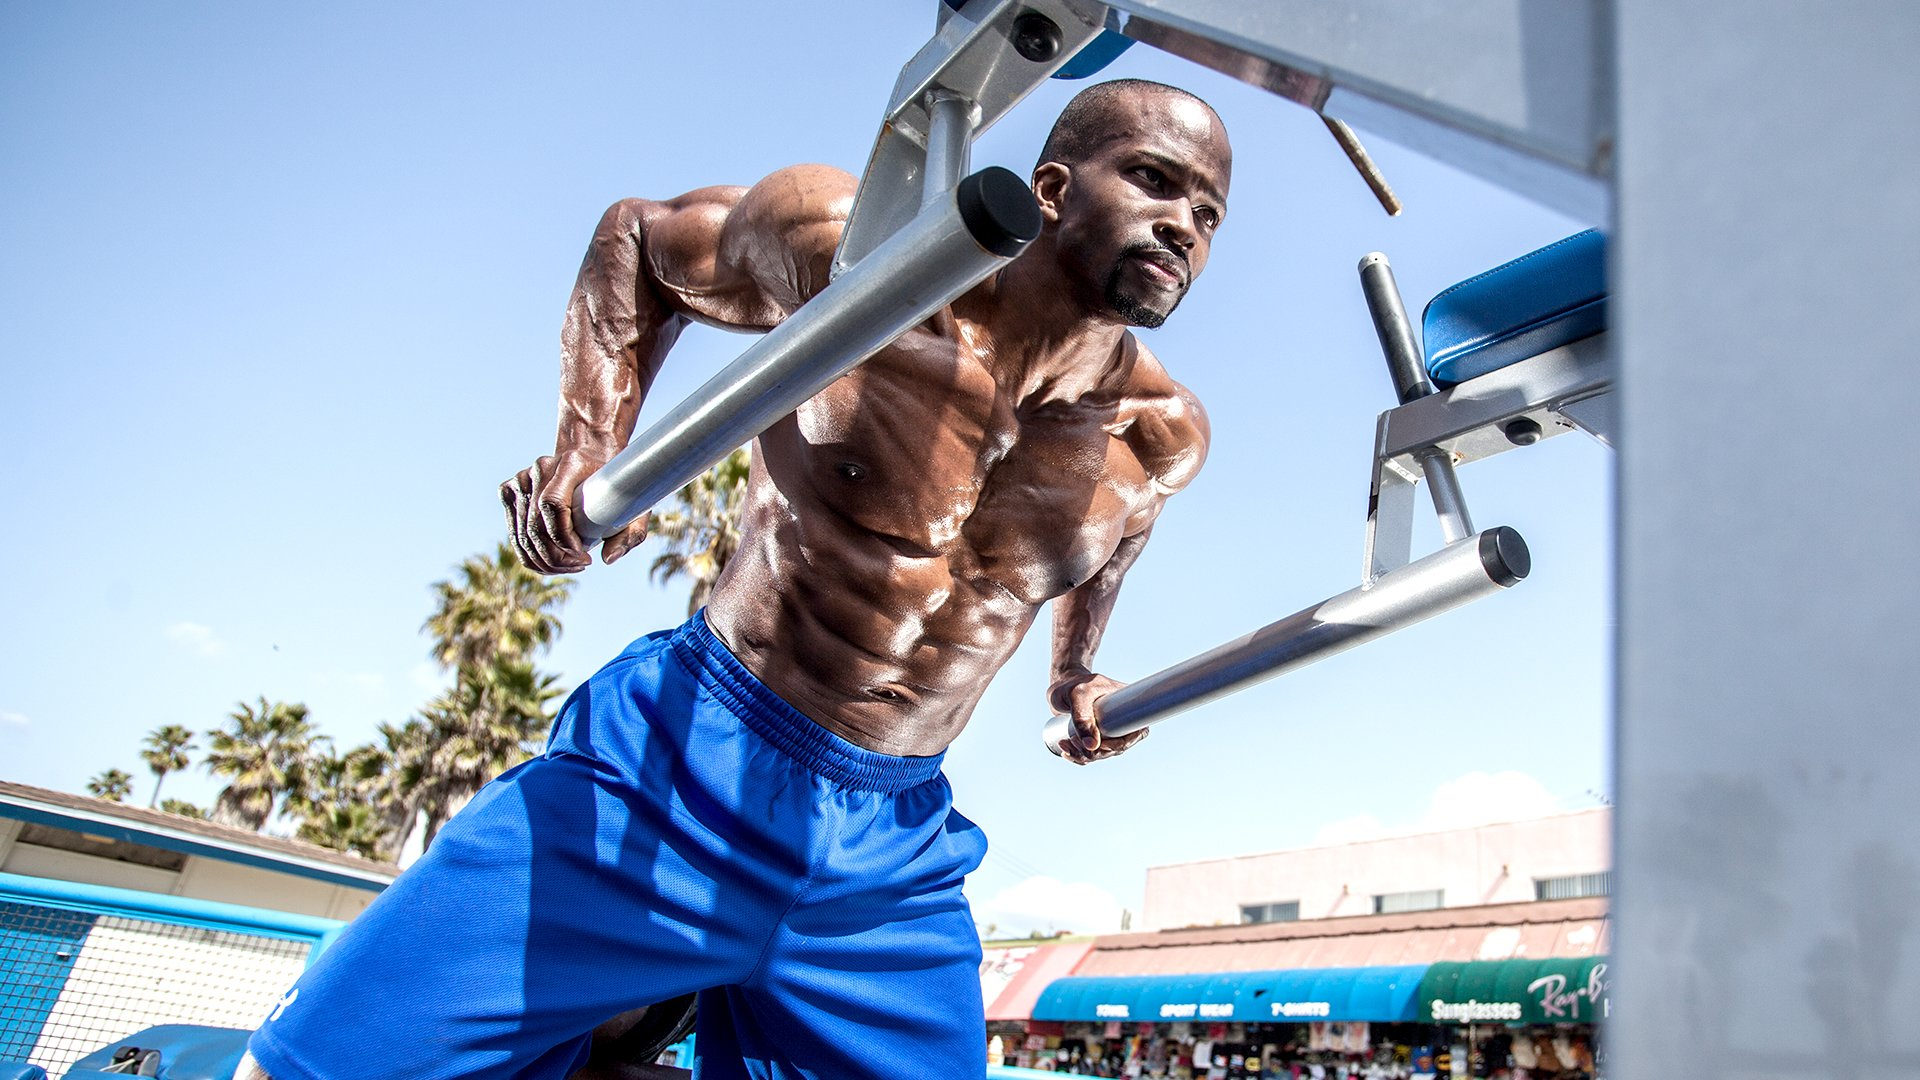 Best Training Program For Mass Gains